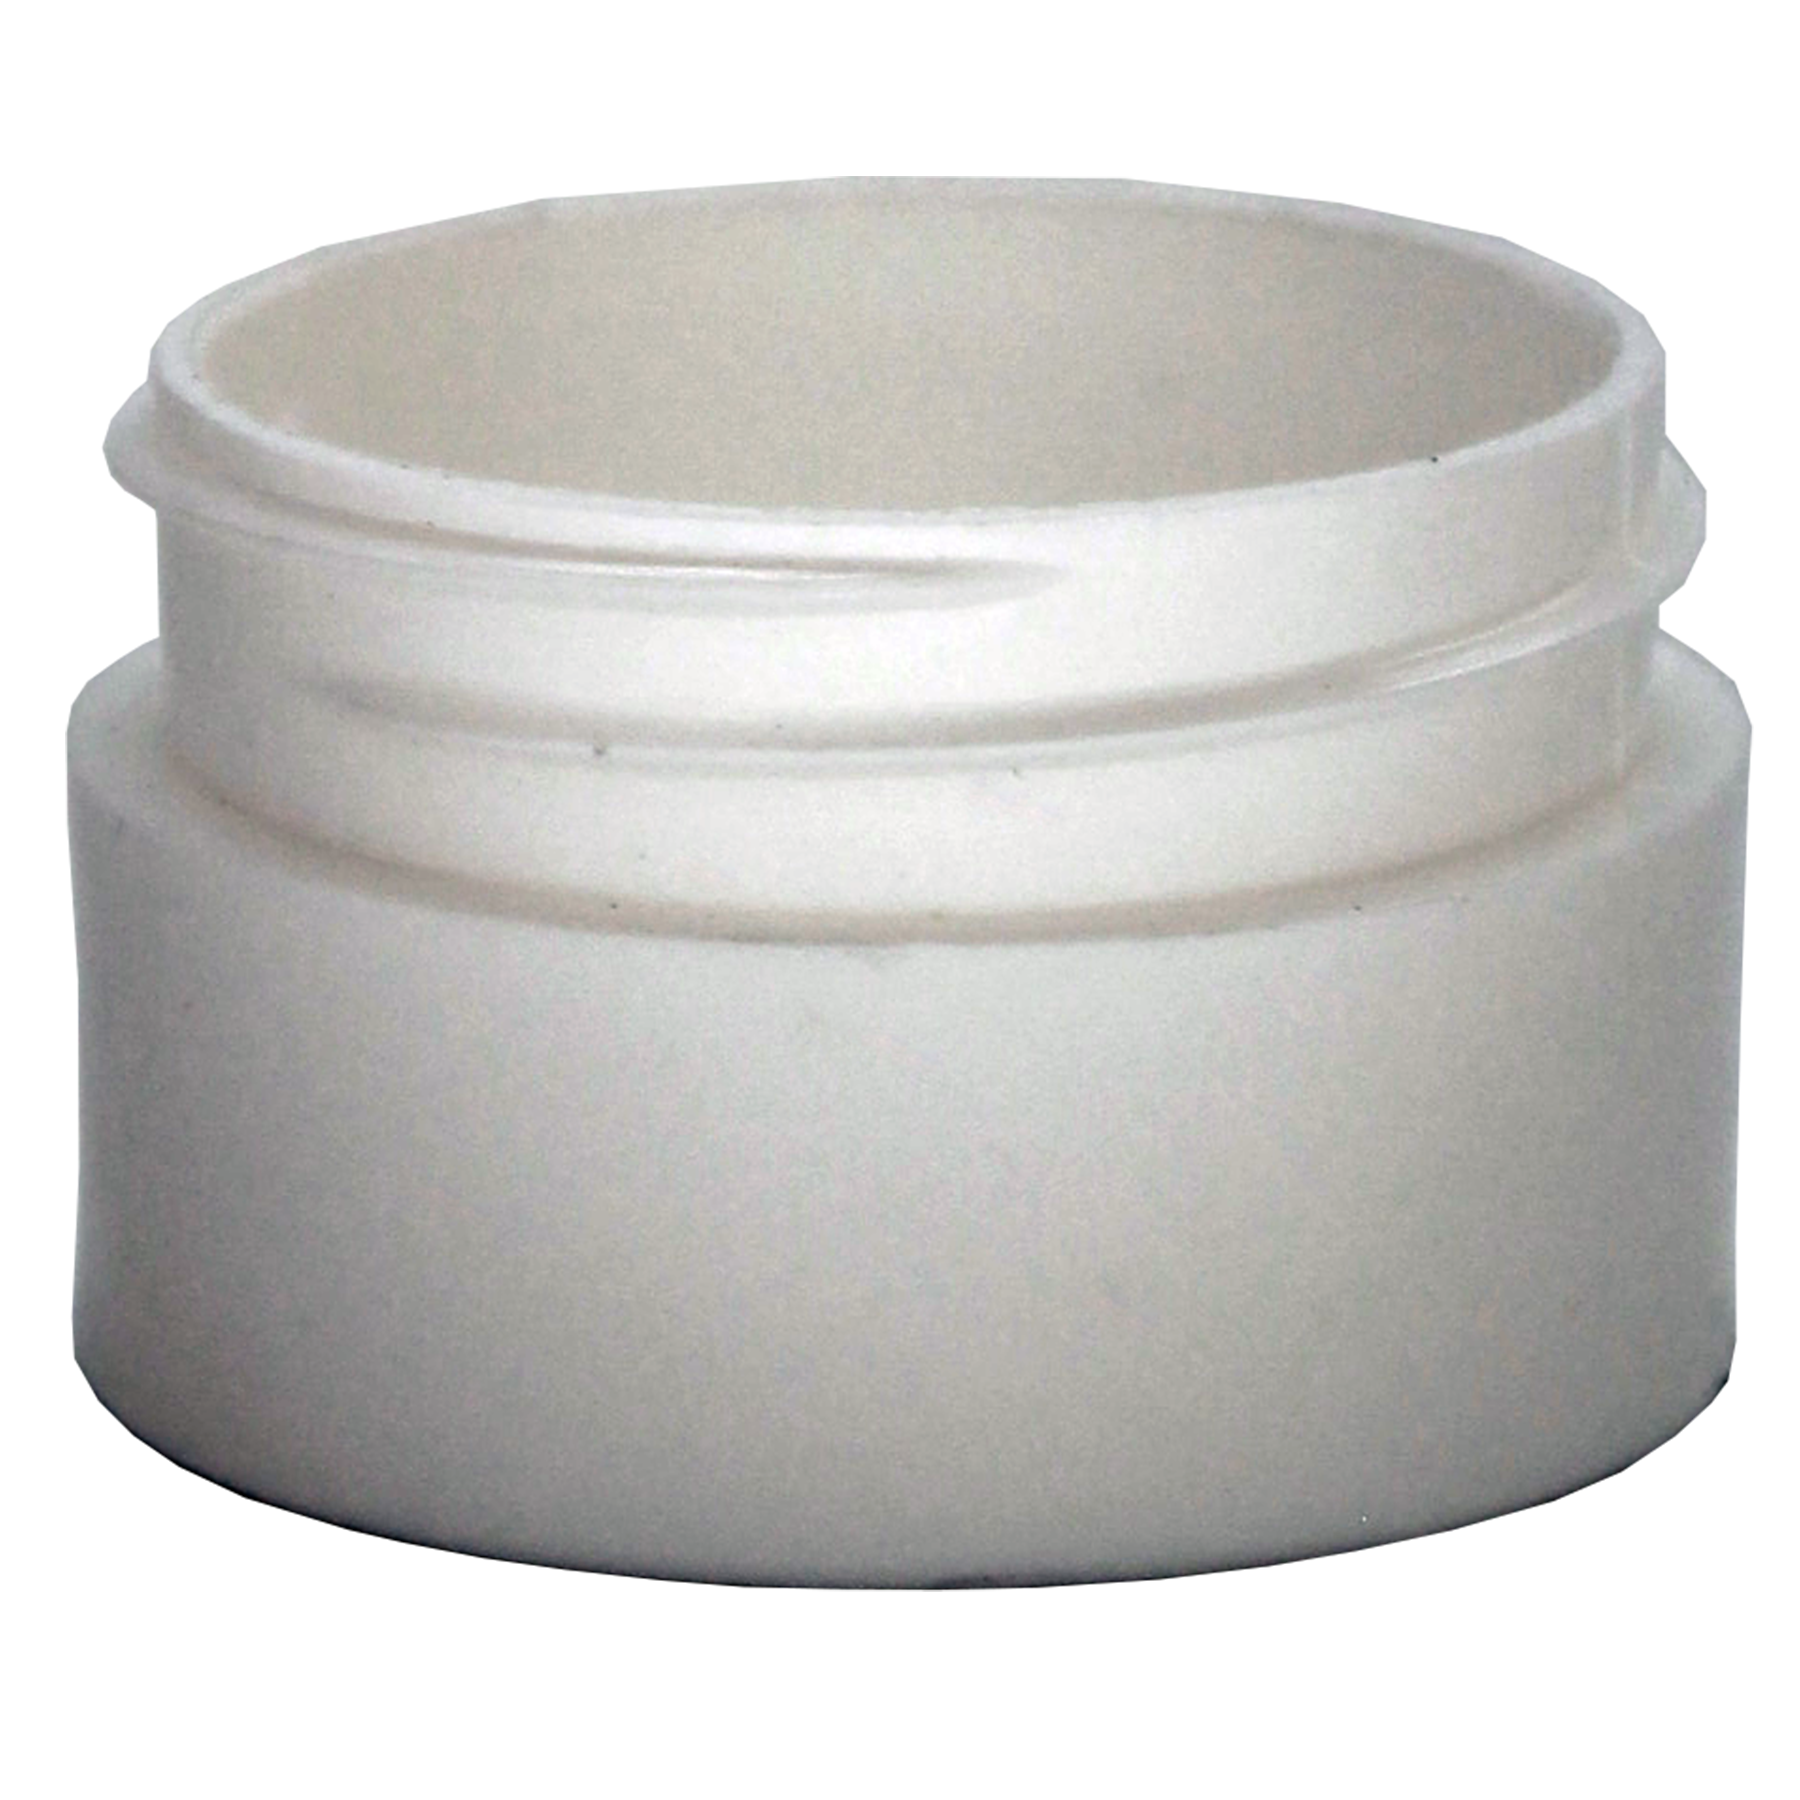 Transparent jar 12 ounce. Product search all american